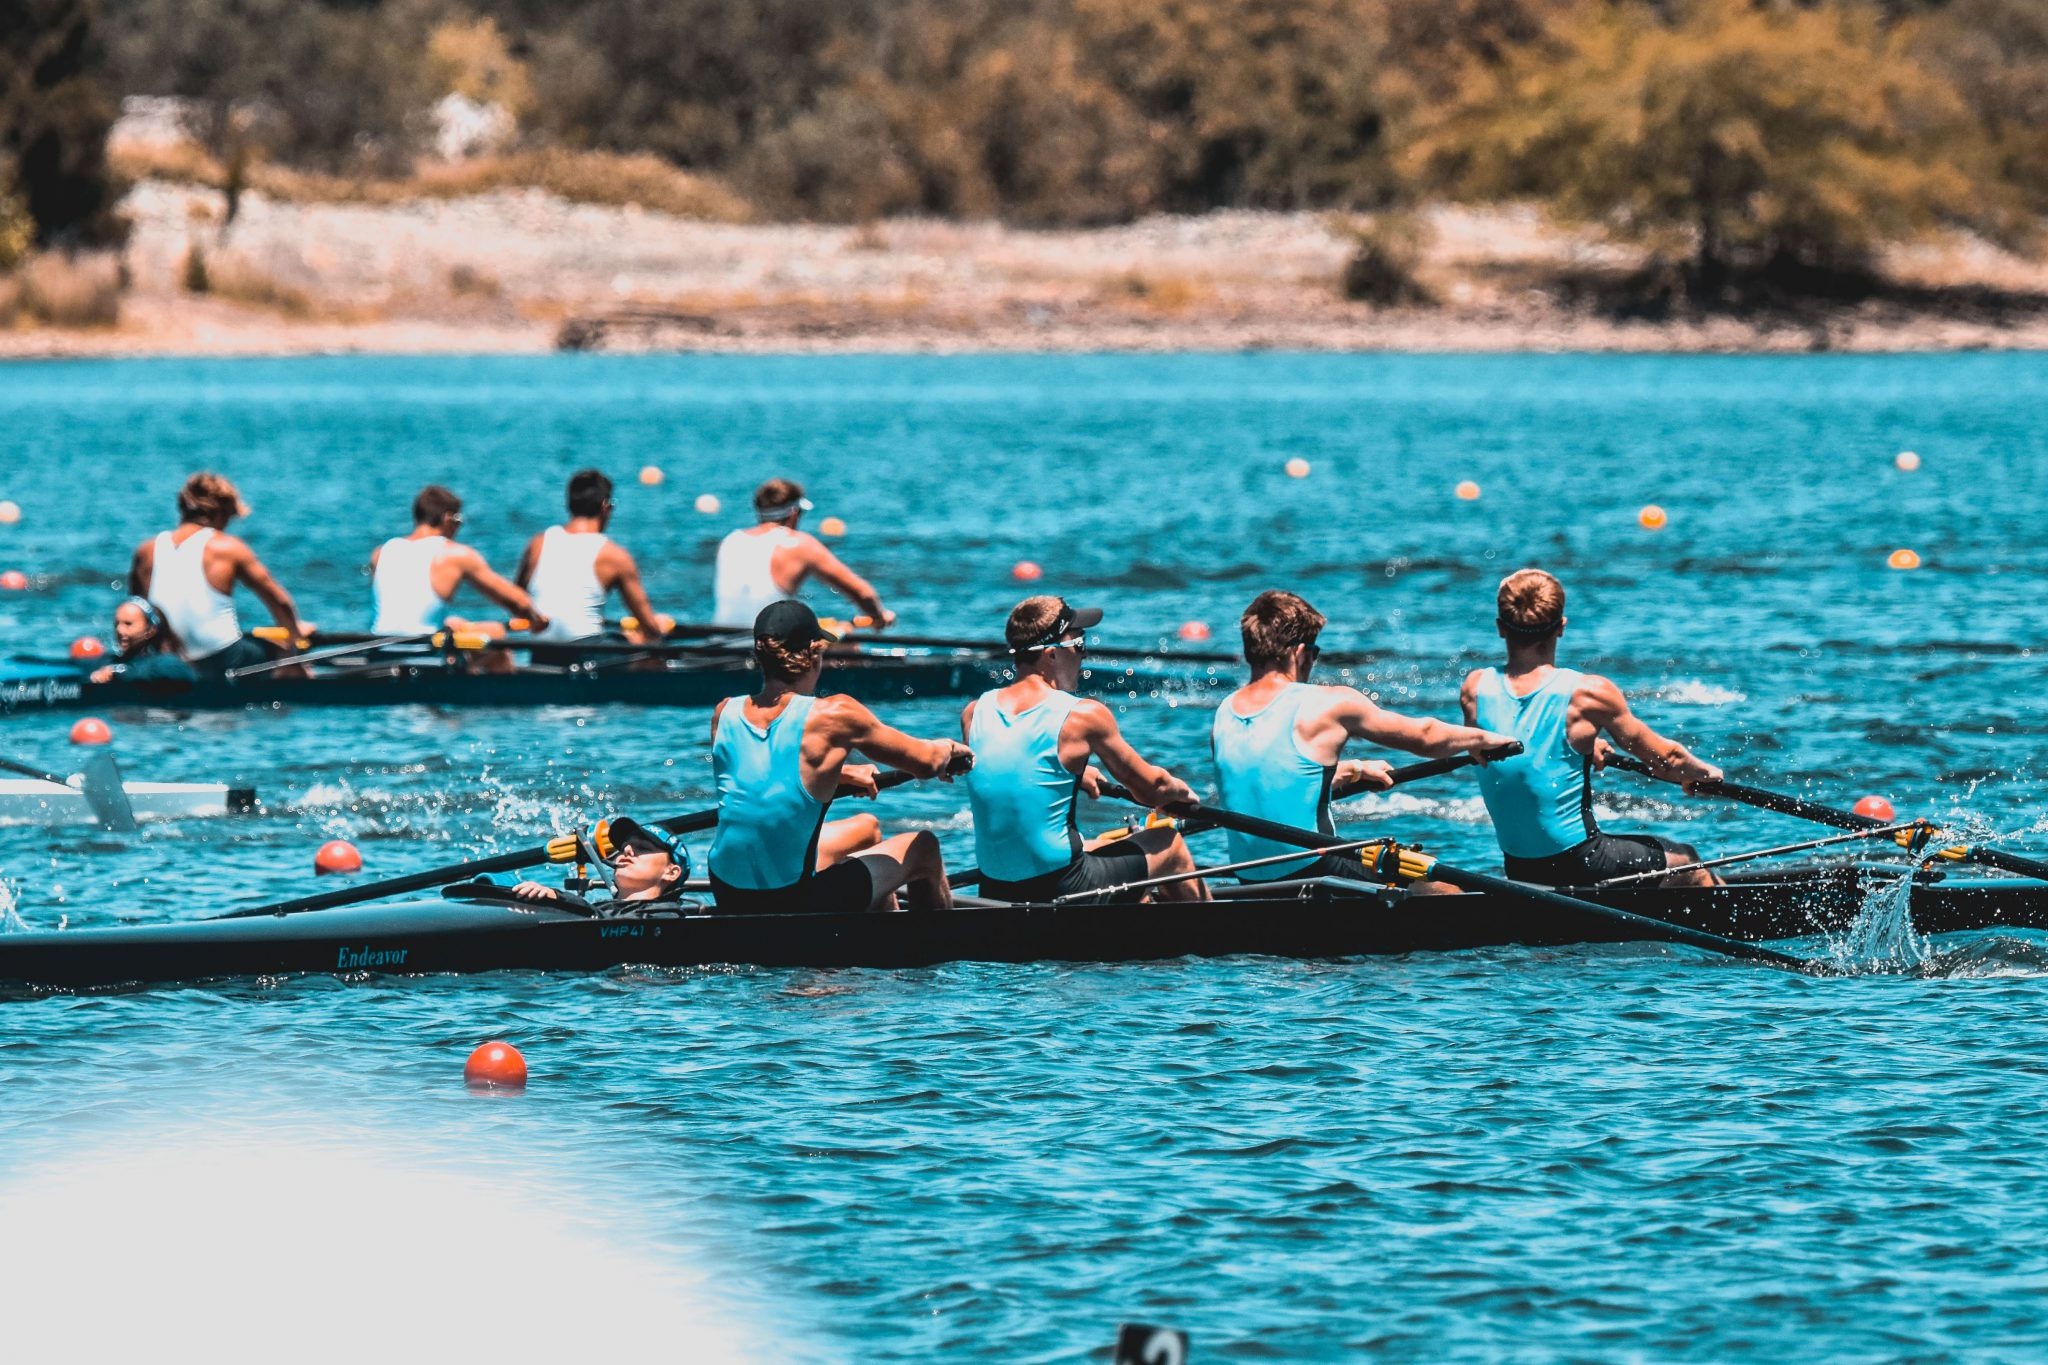 mens4atnationals